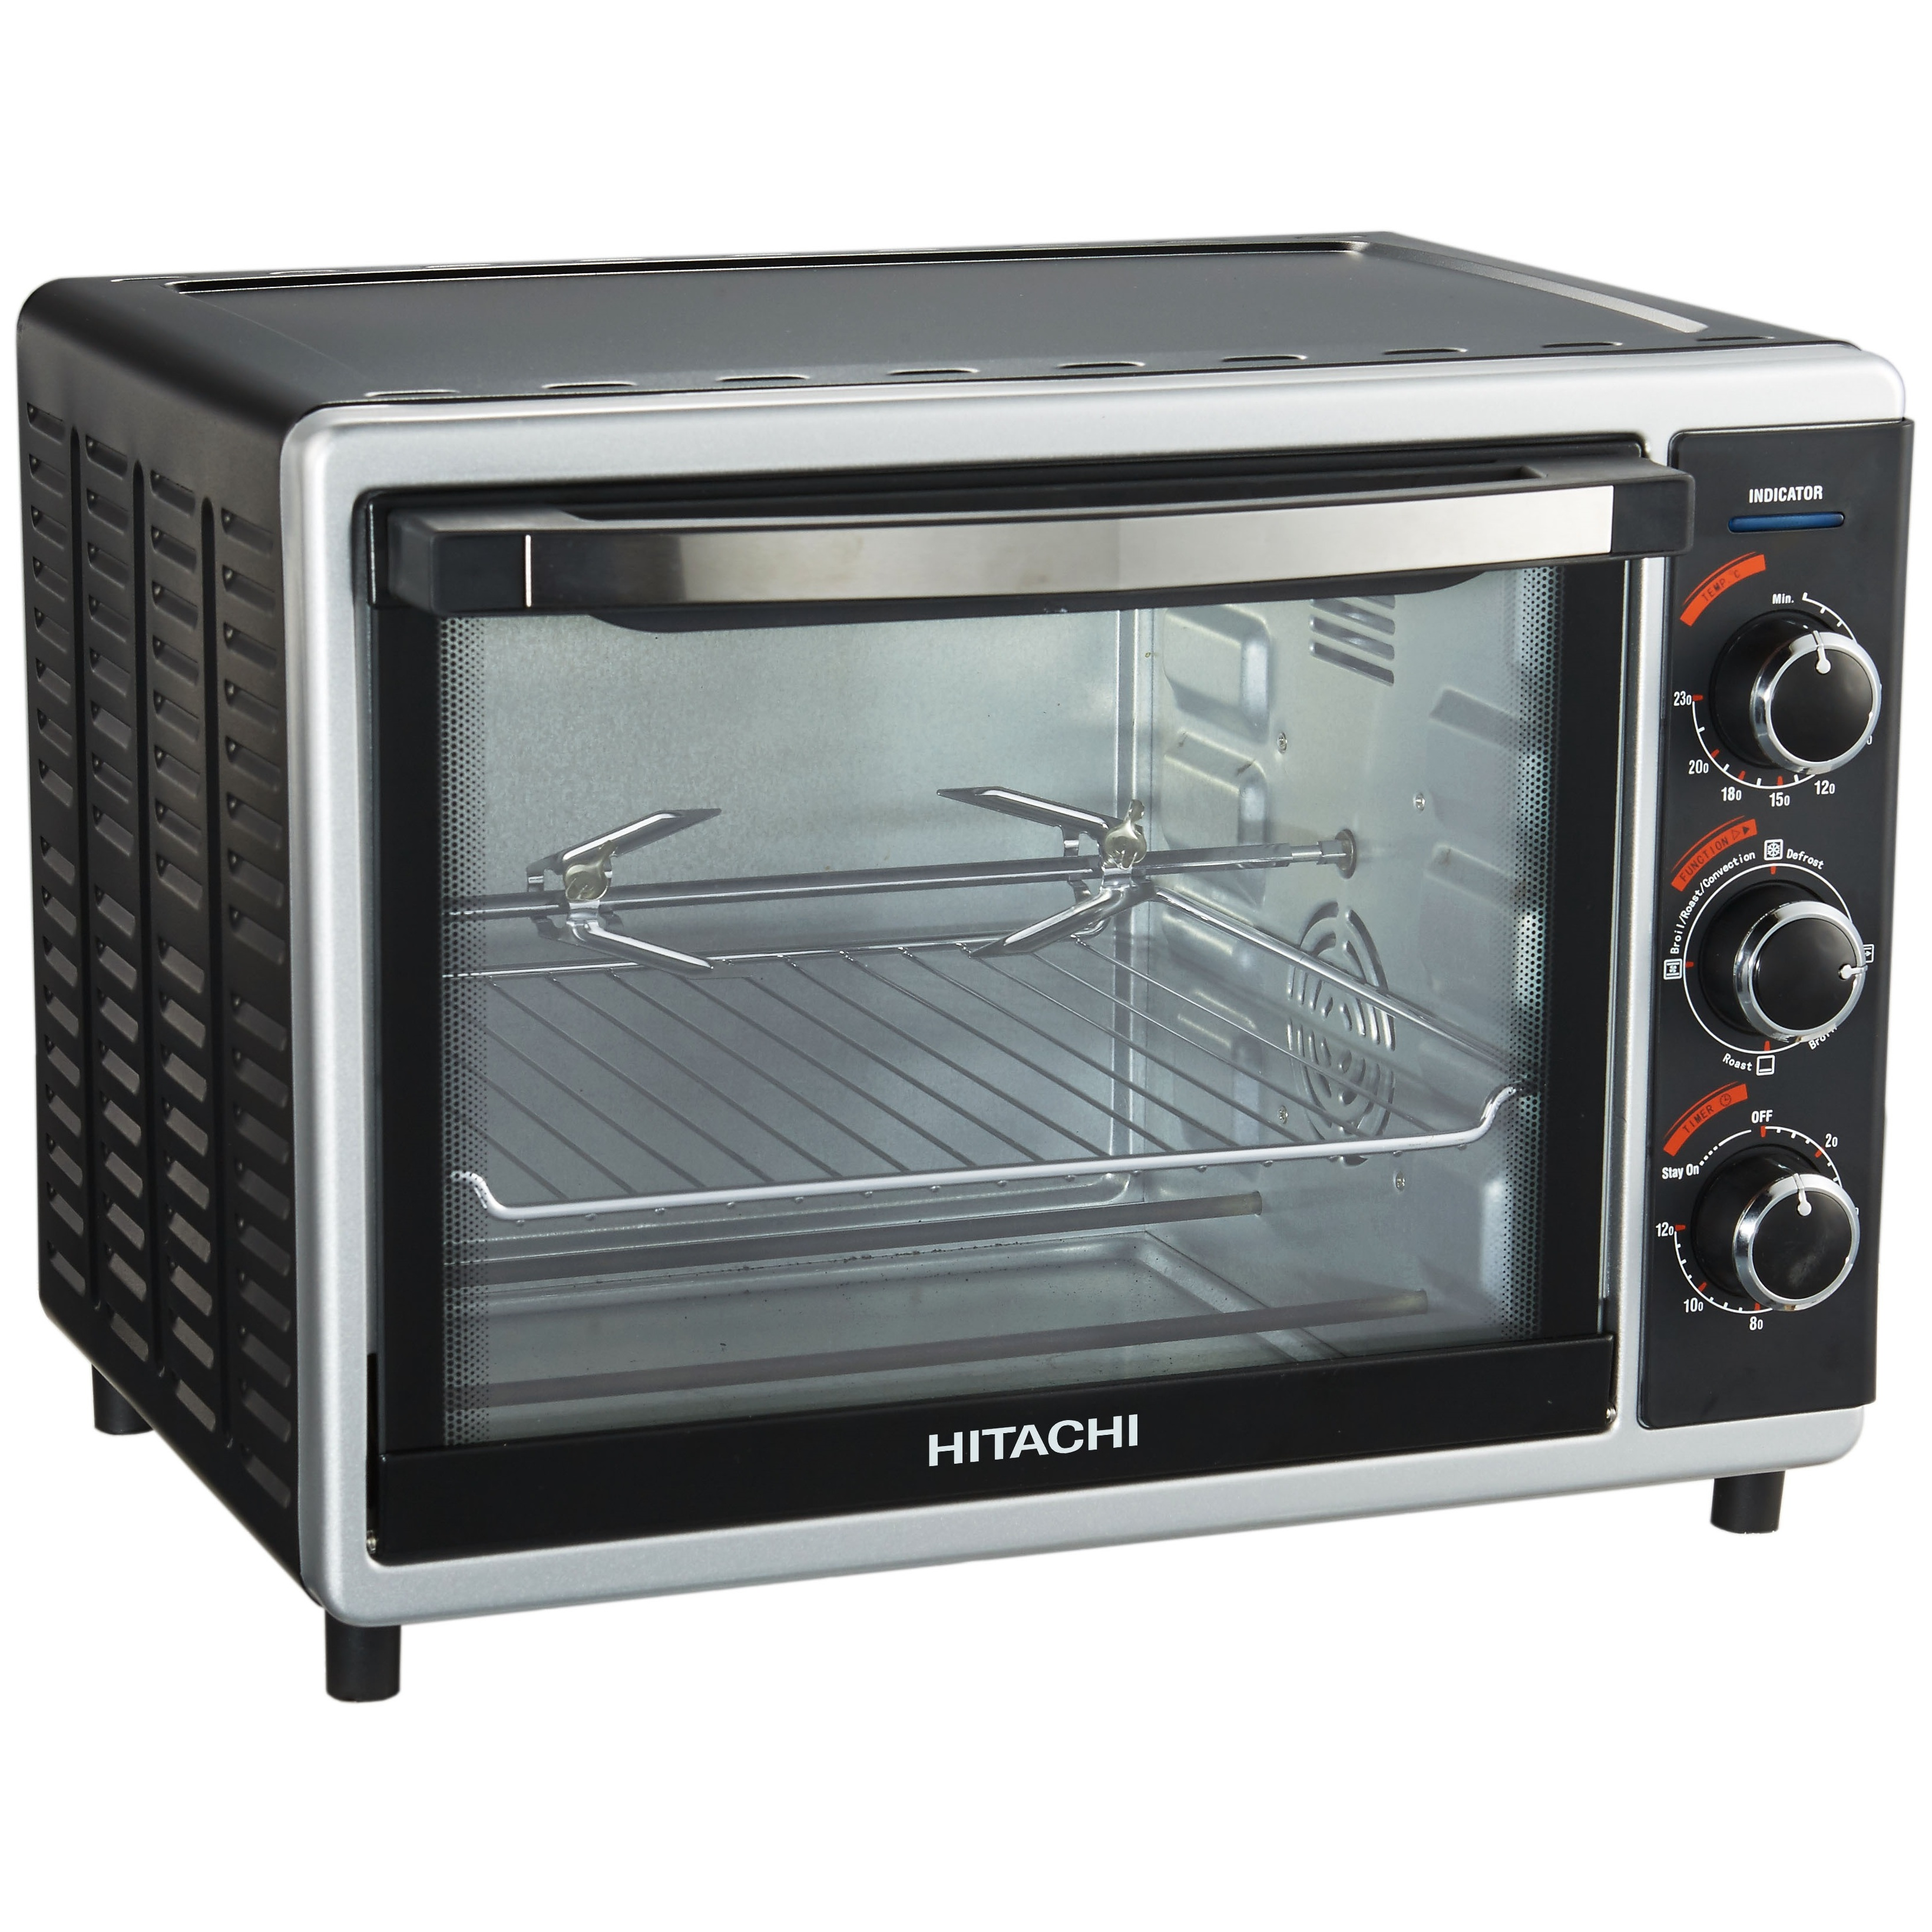 Electric Ovens For Sale Hitachi Electric Oven 42 Litres Hotg42 Price In Oman Sale On